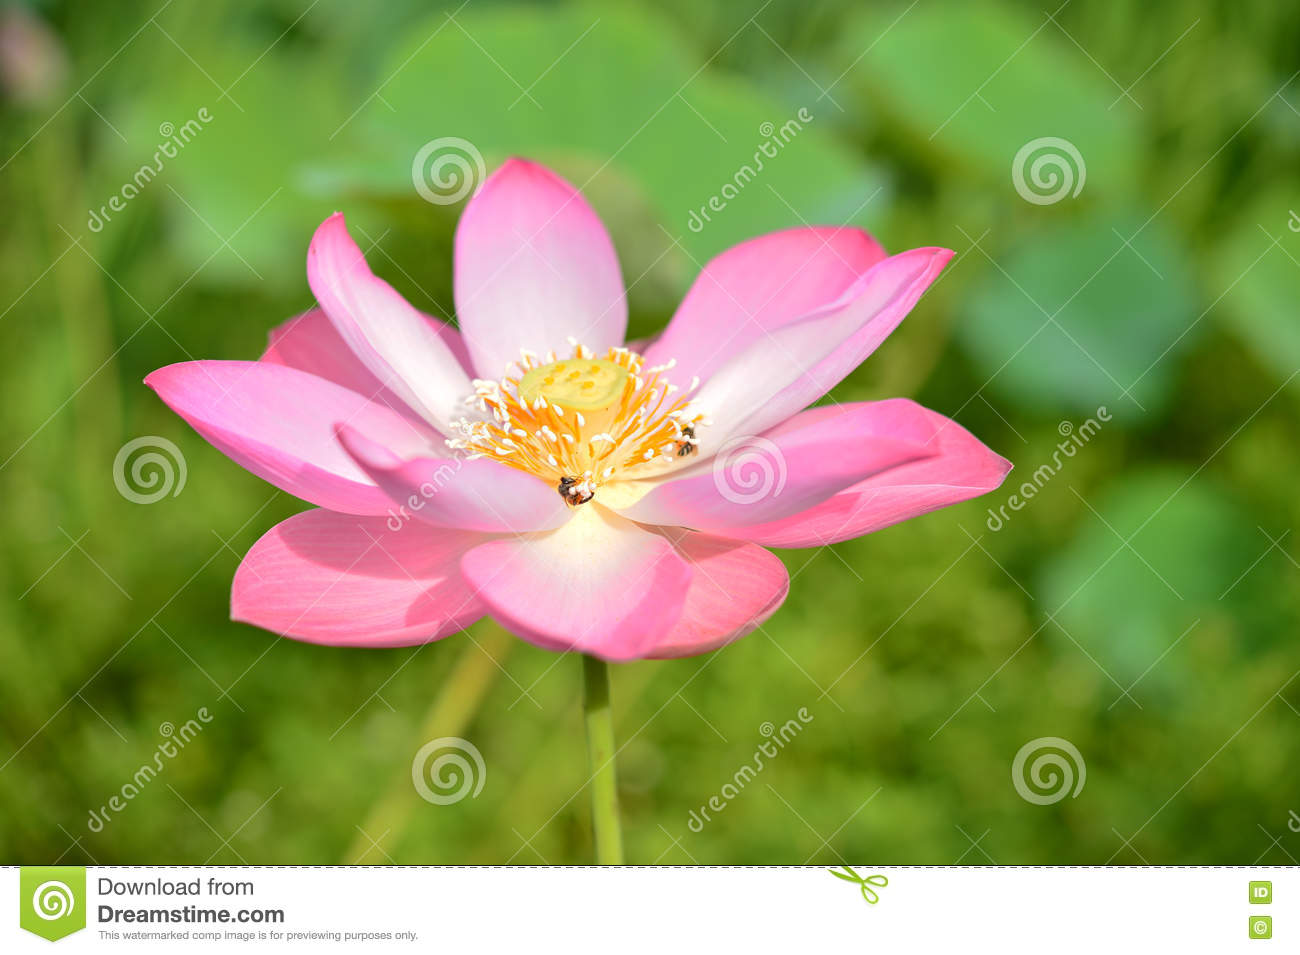 Blossom Lotus Flower Beautiful Lotus Flower In The Morningpink